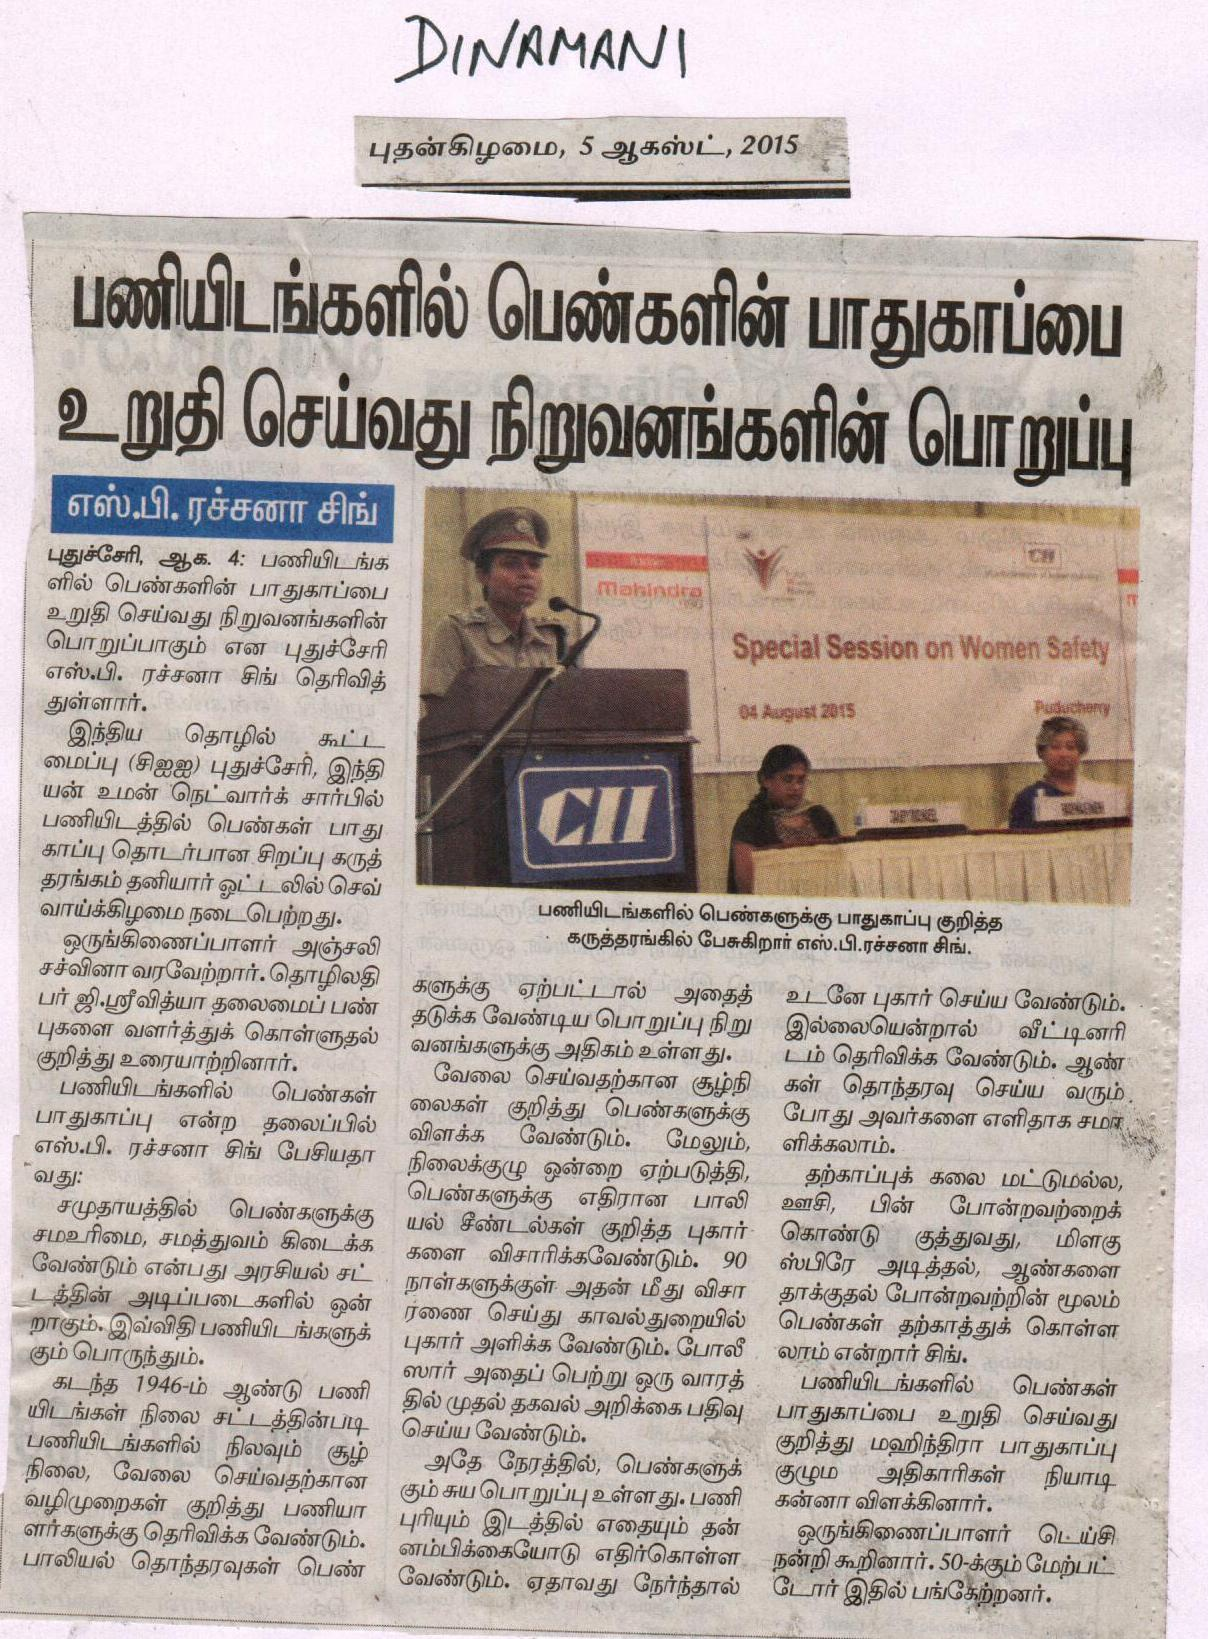 Dinamani_Women Safety Session